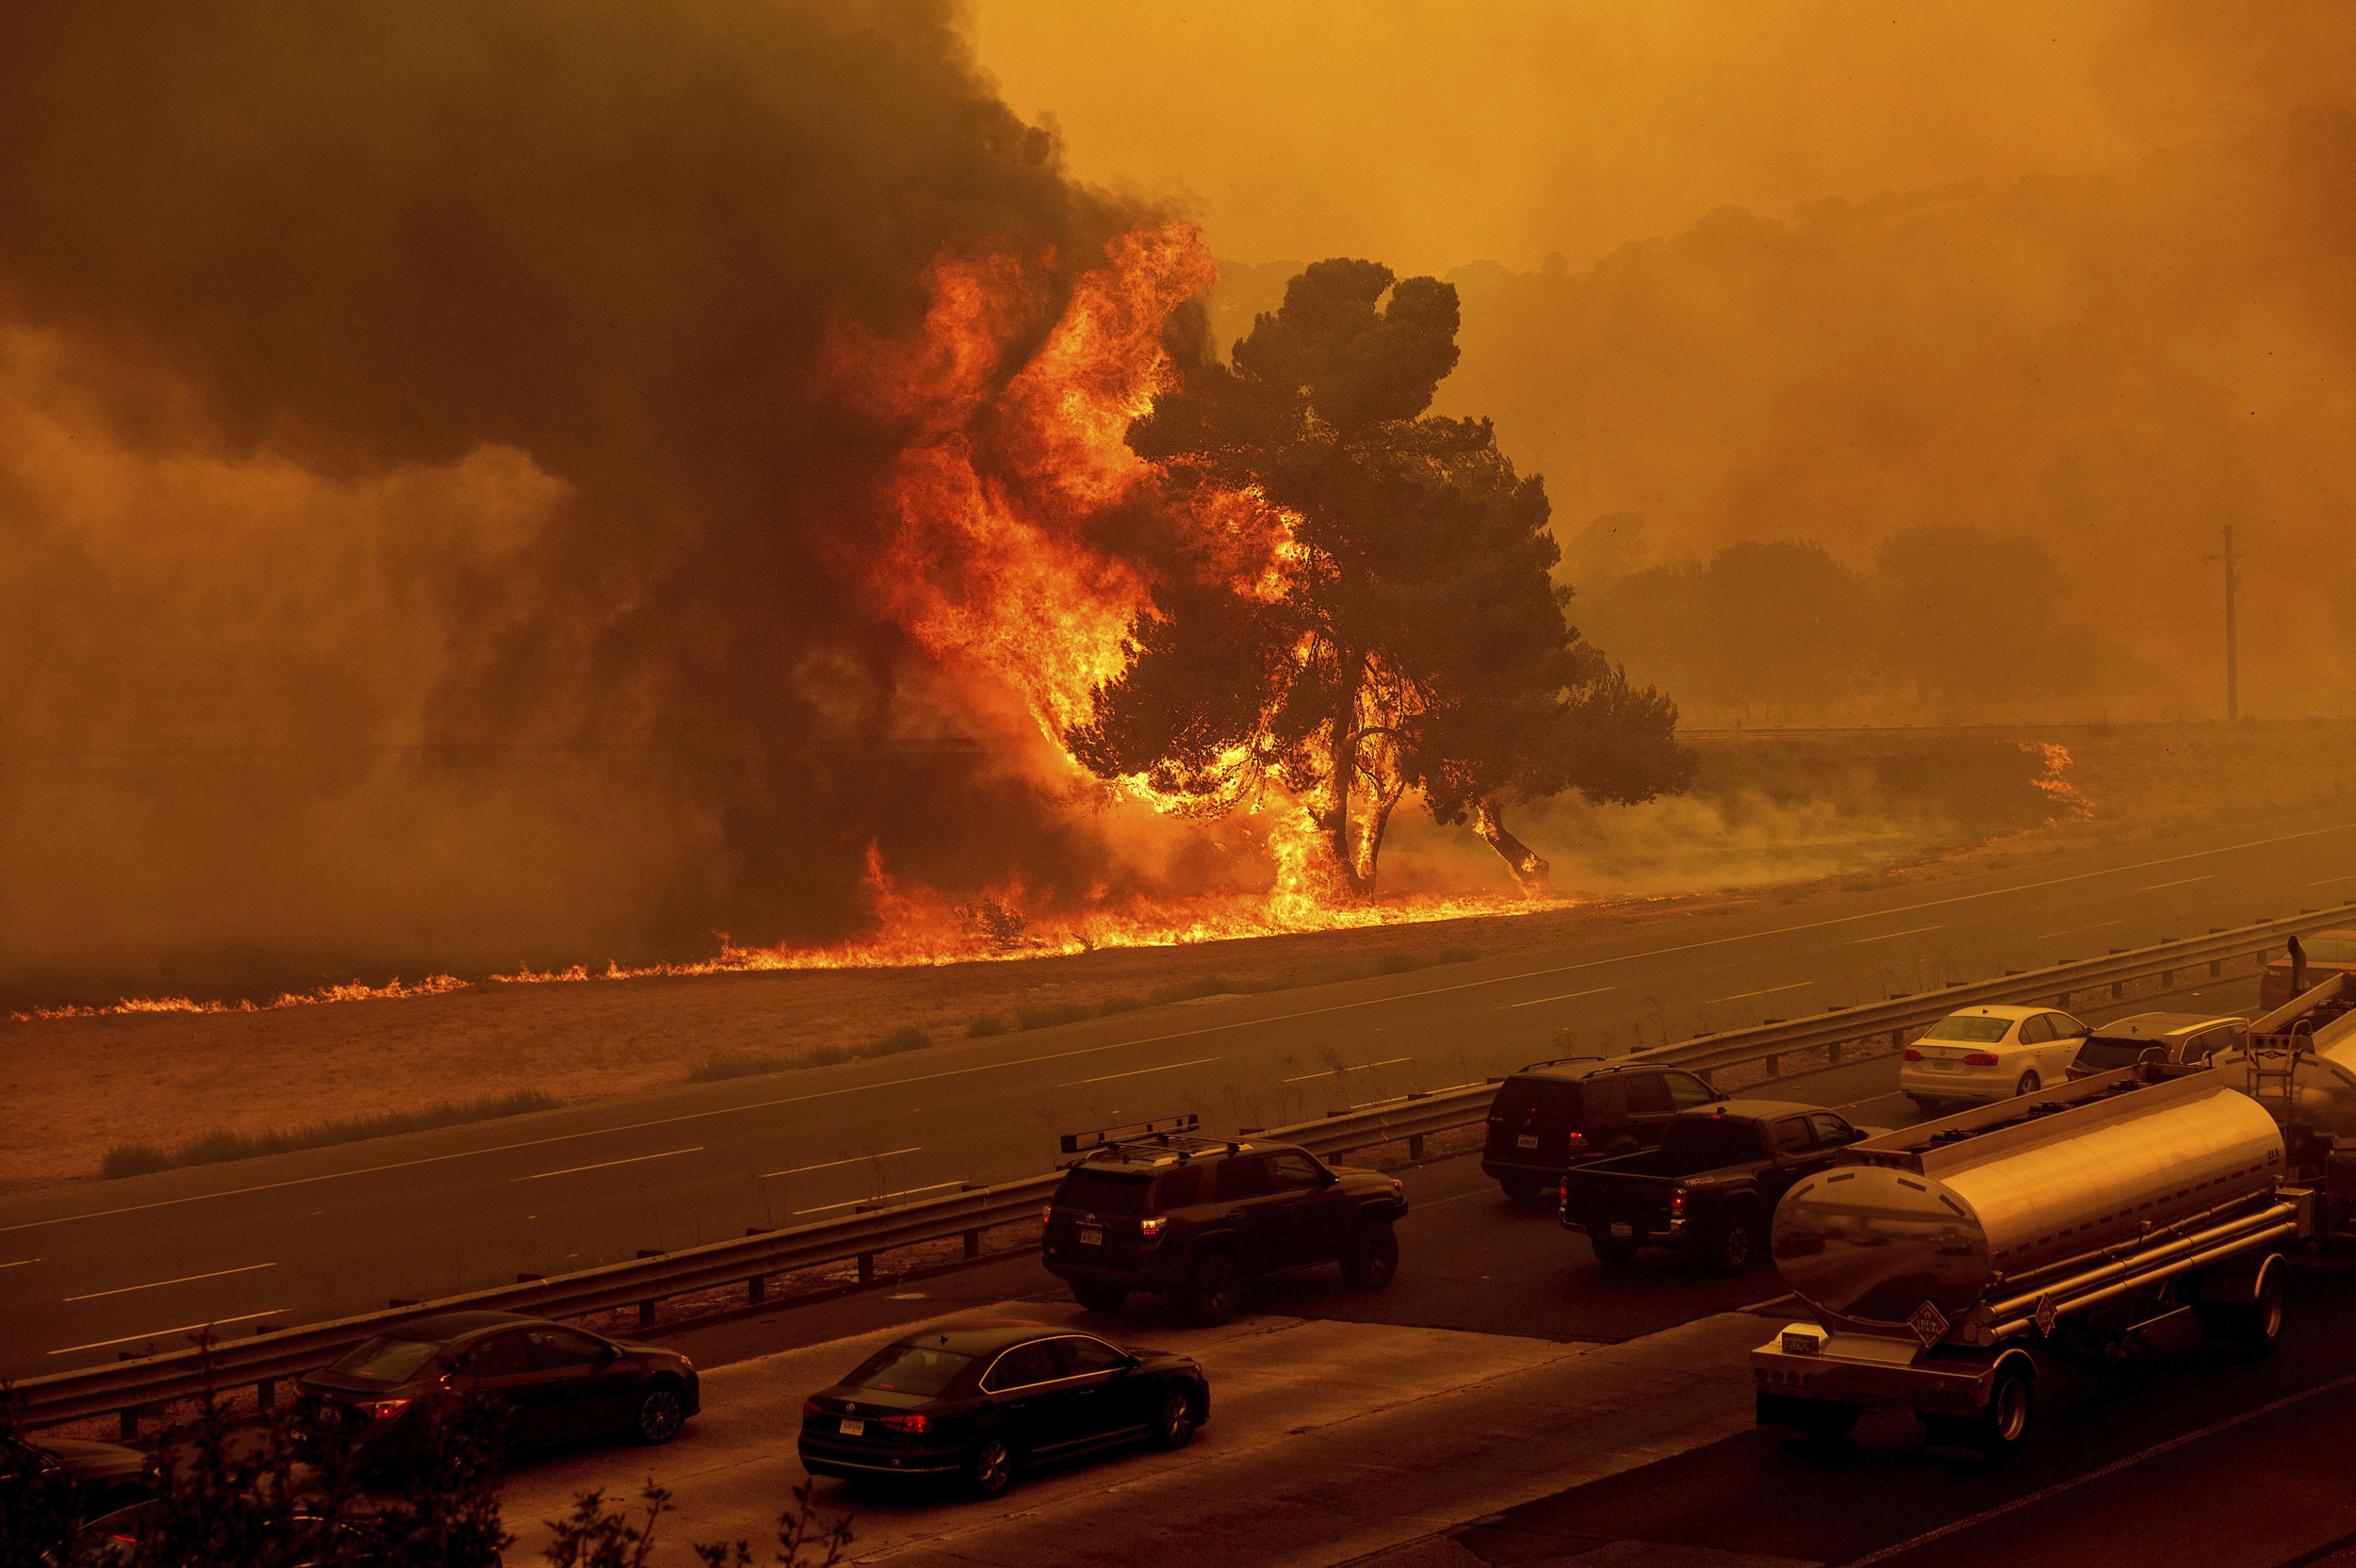 Firefighters are stretched thin as flames rage across California